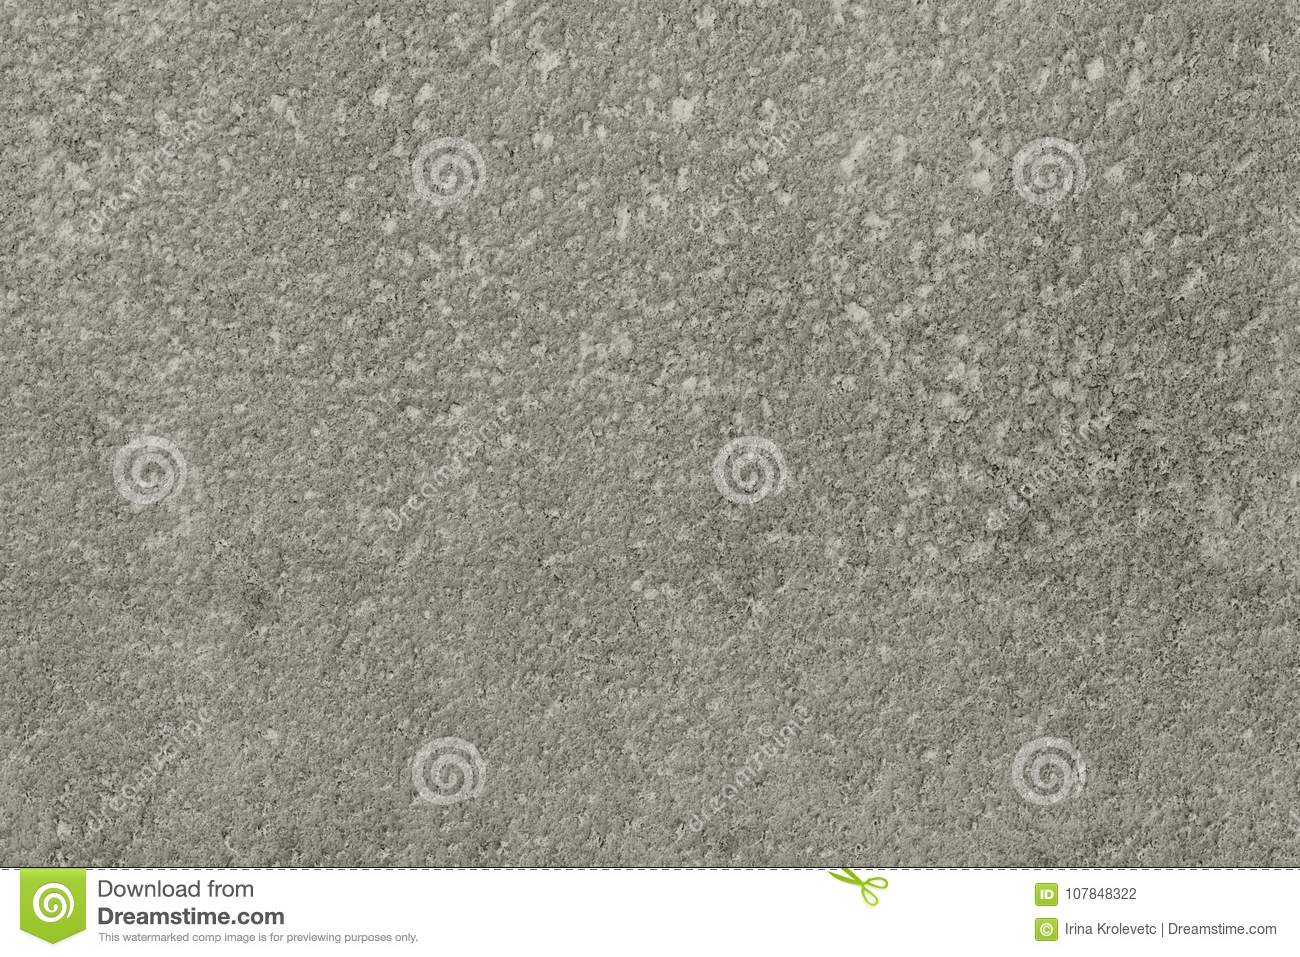 Beige Concrete Textured Background Stock Photo Image of backdrop